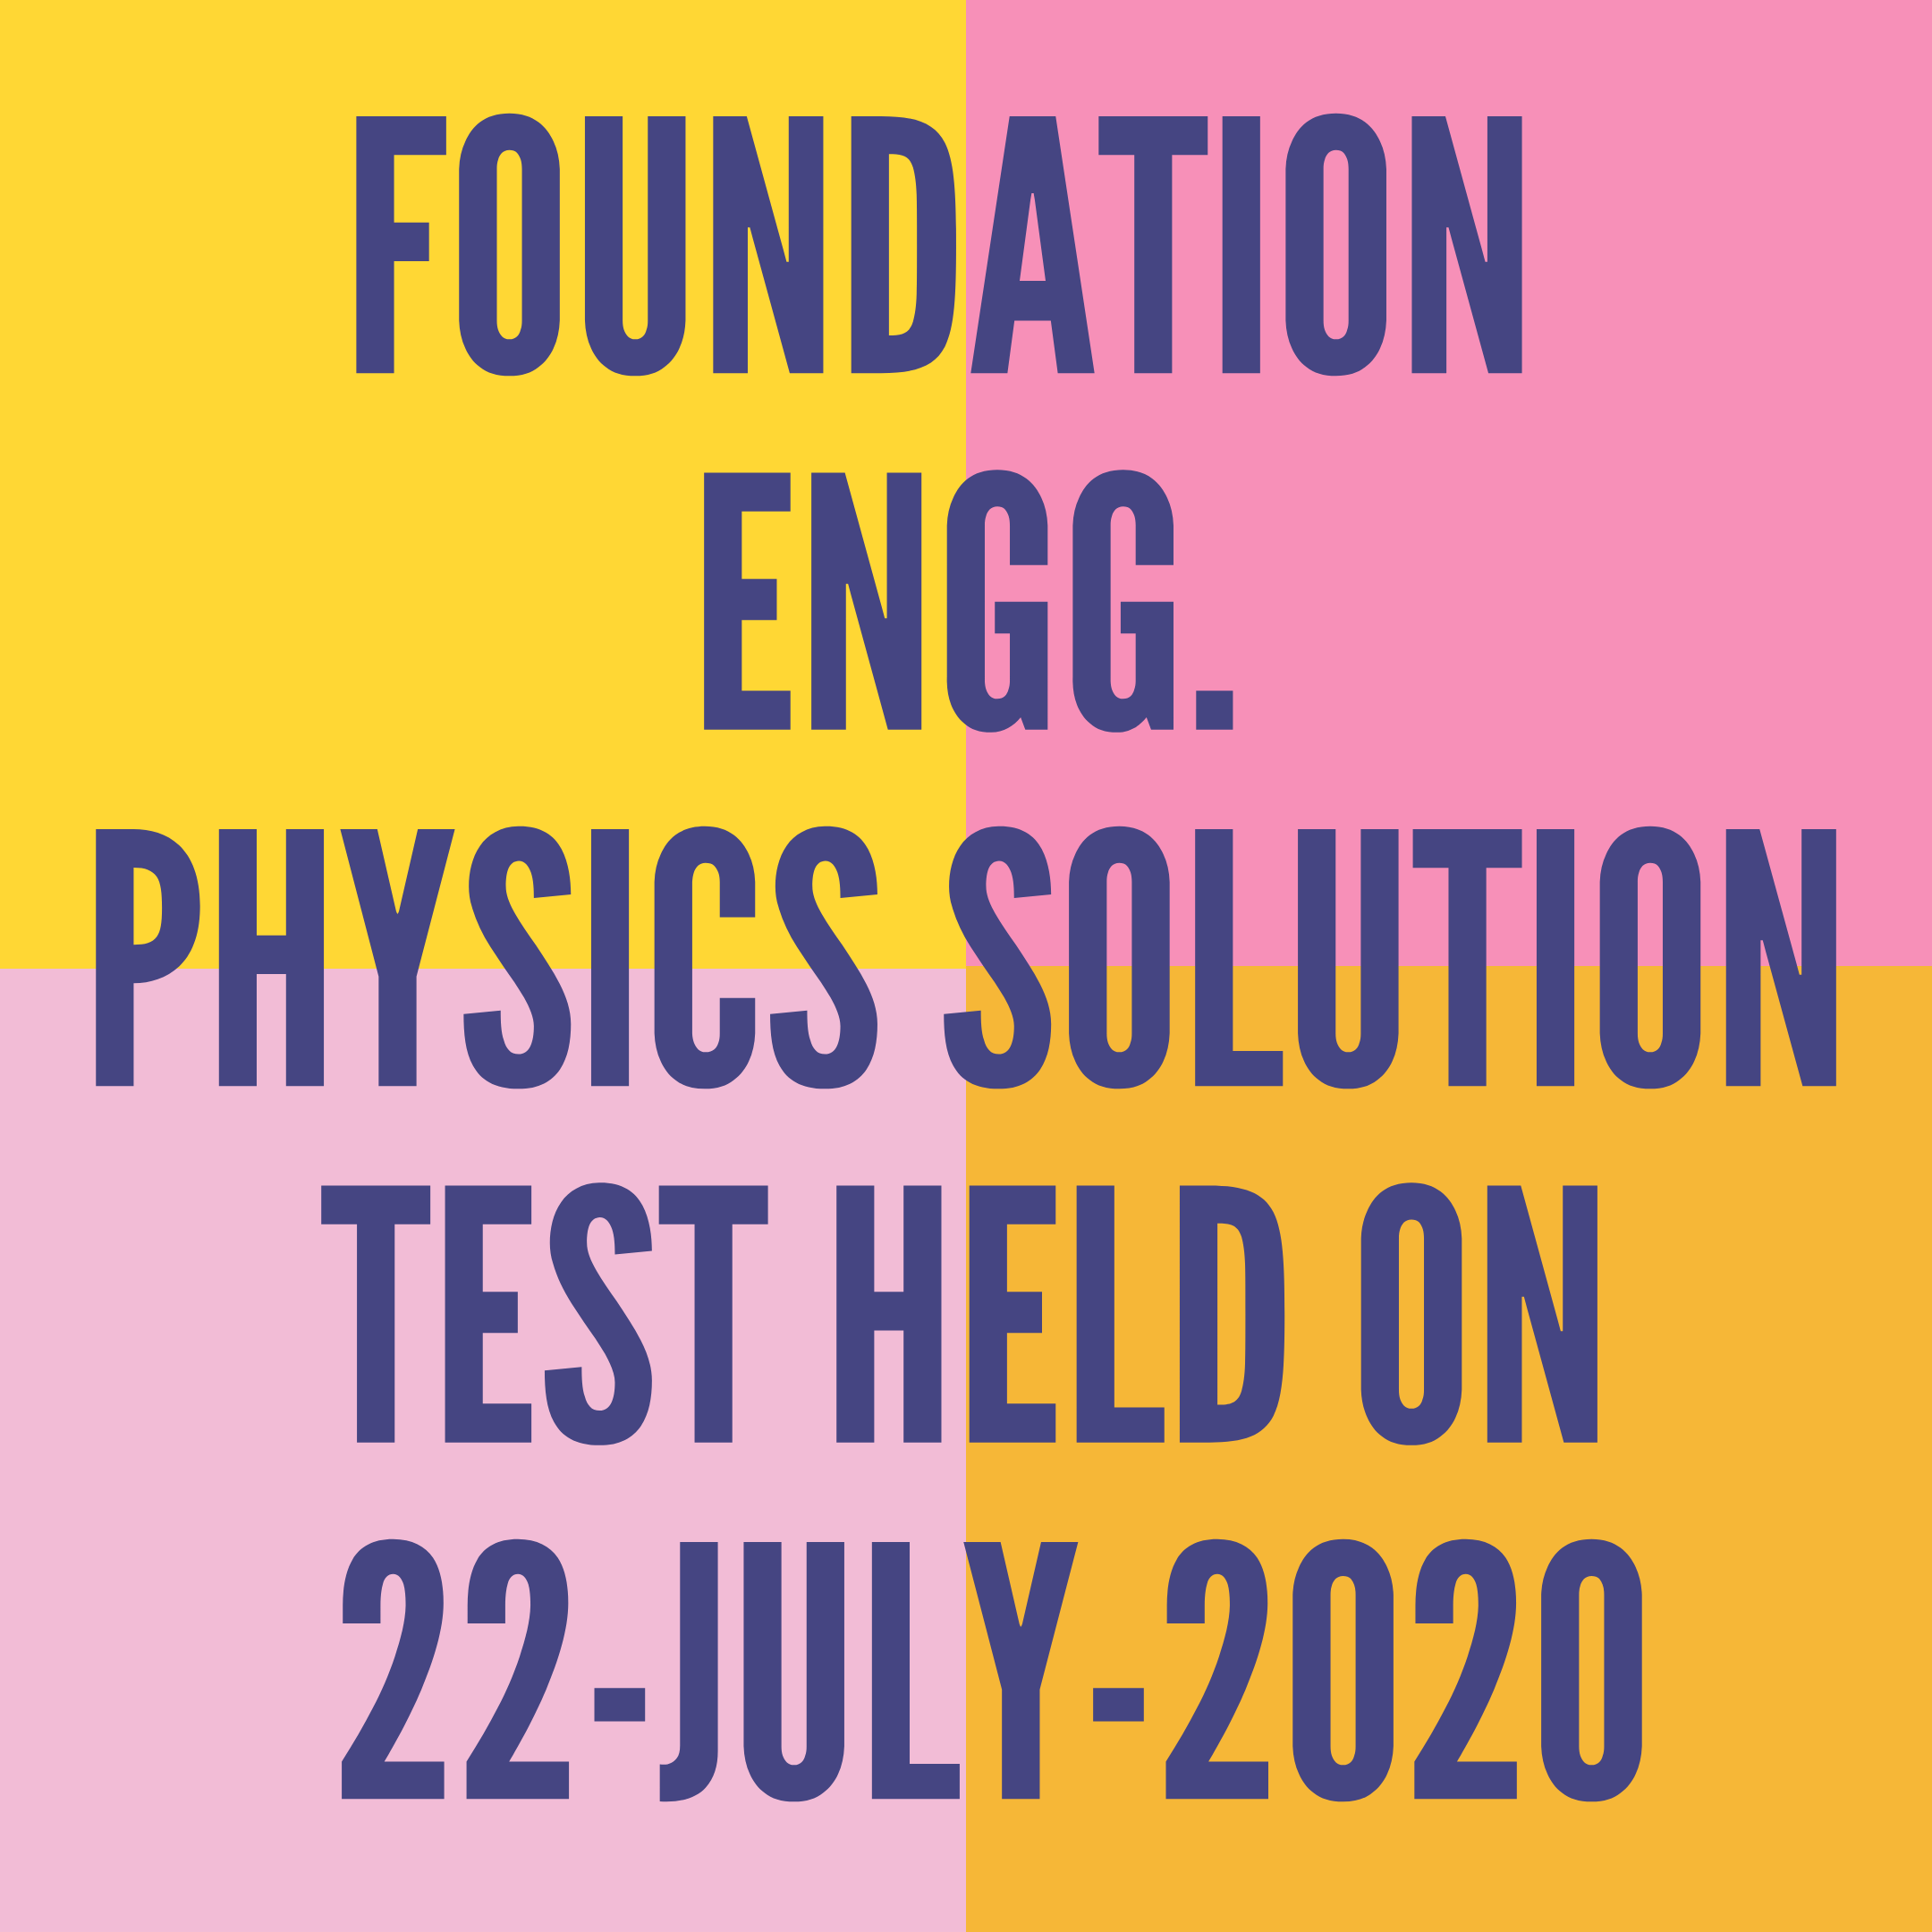 FOUNDATION ENGG.- PHYSICS SOLUTION- TEST HELD ON 22-JULY-2020